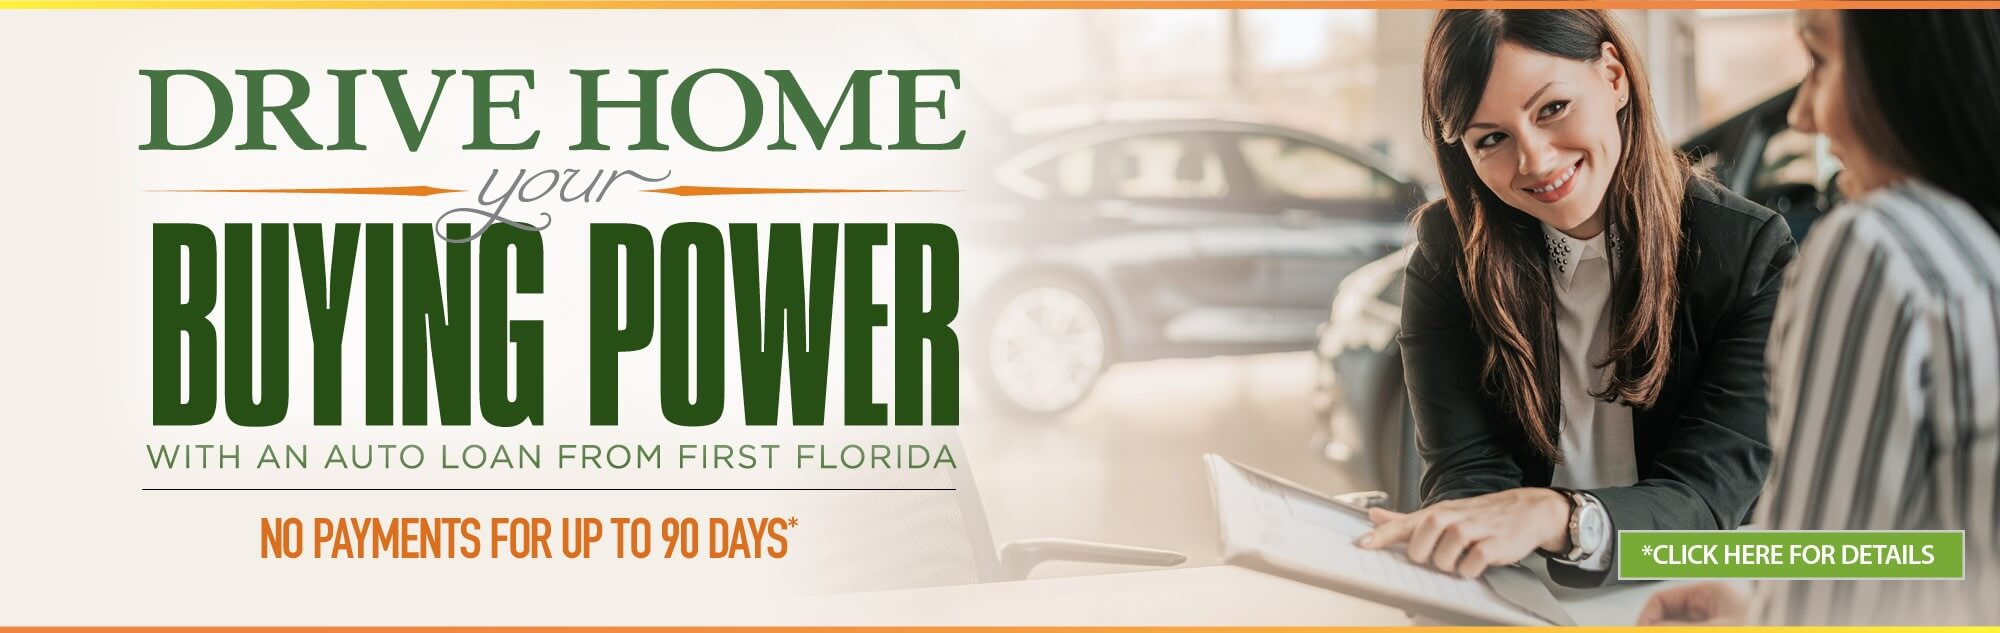 Drive home your buying power with an auto loan from First Florida. Feel confident with an auto loan featuring no payment for up to 90 days*. Click for details.